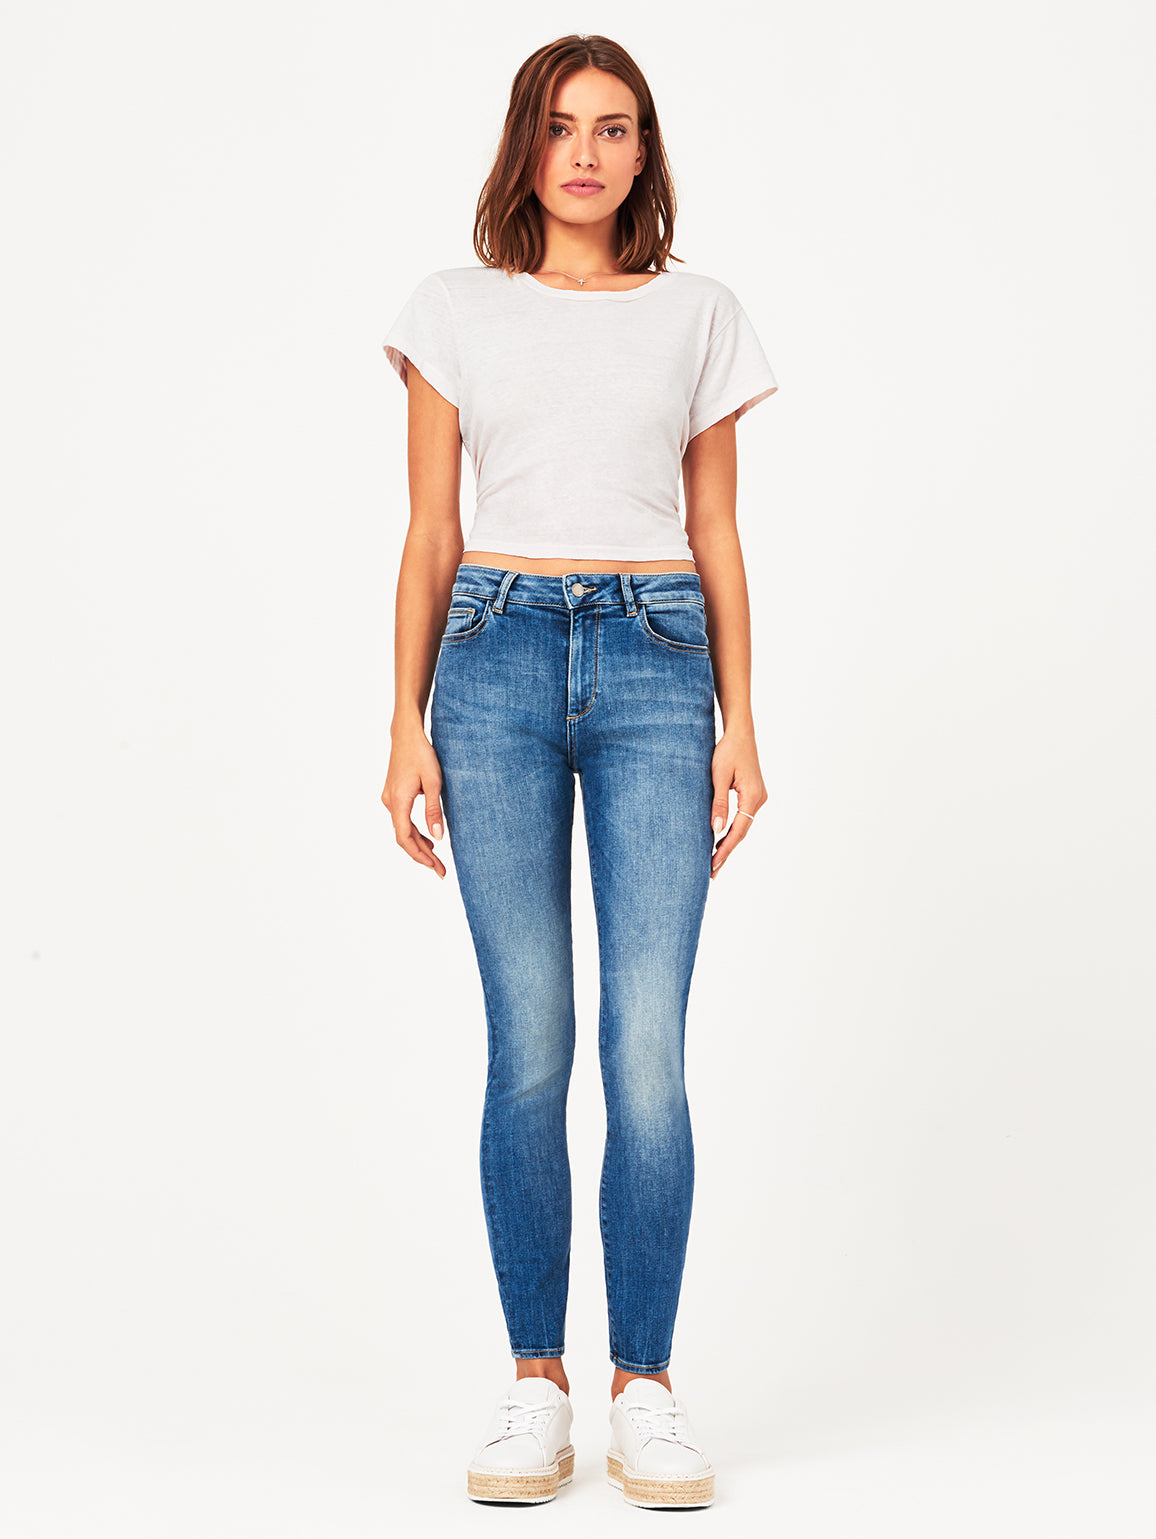 Farrow High Rise Skinny | Wells DL 1961 Denim